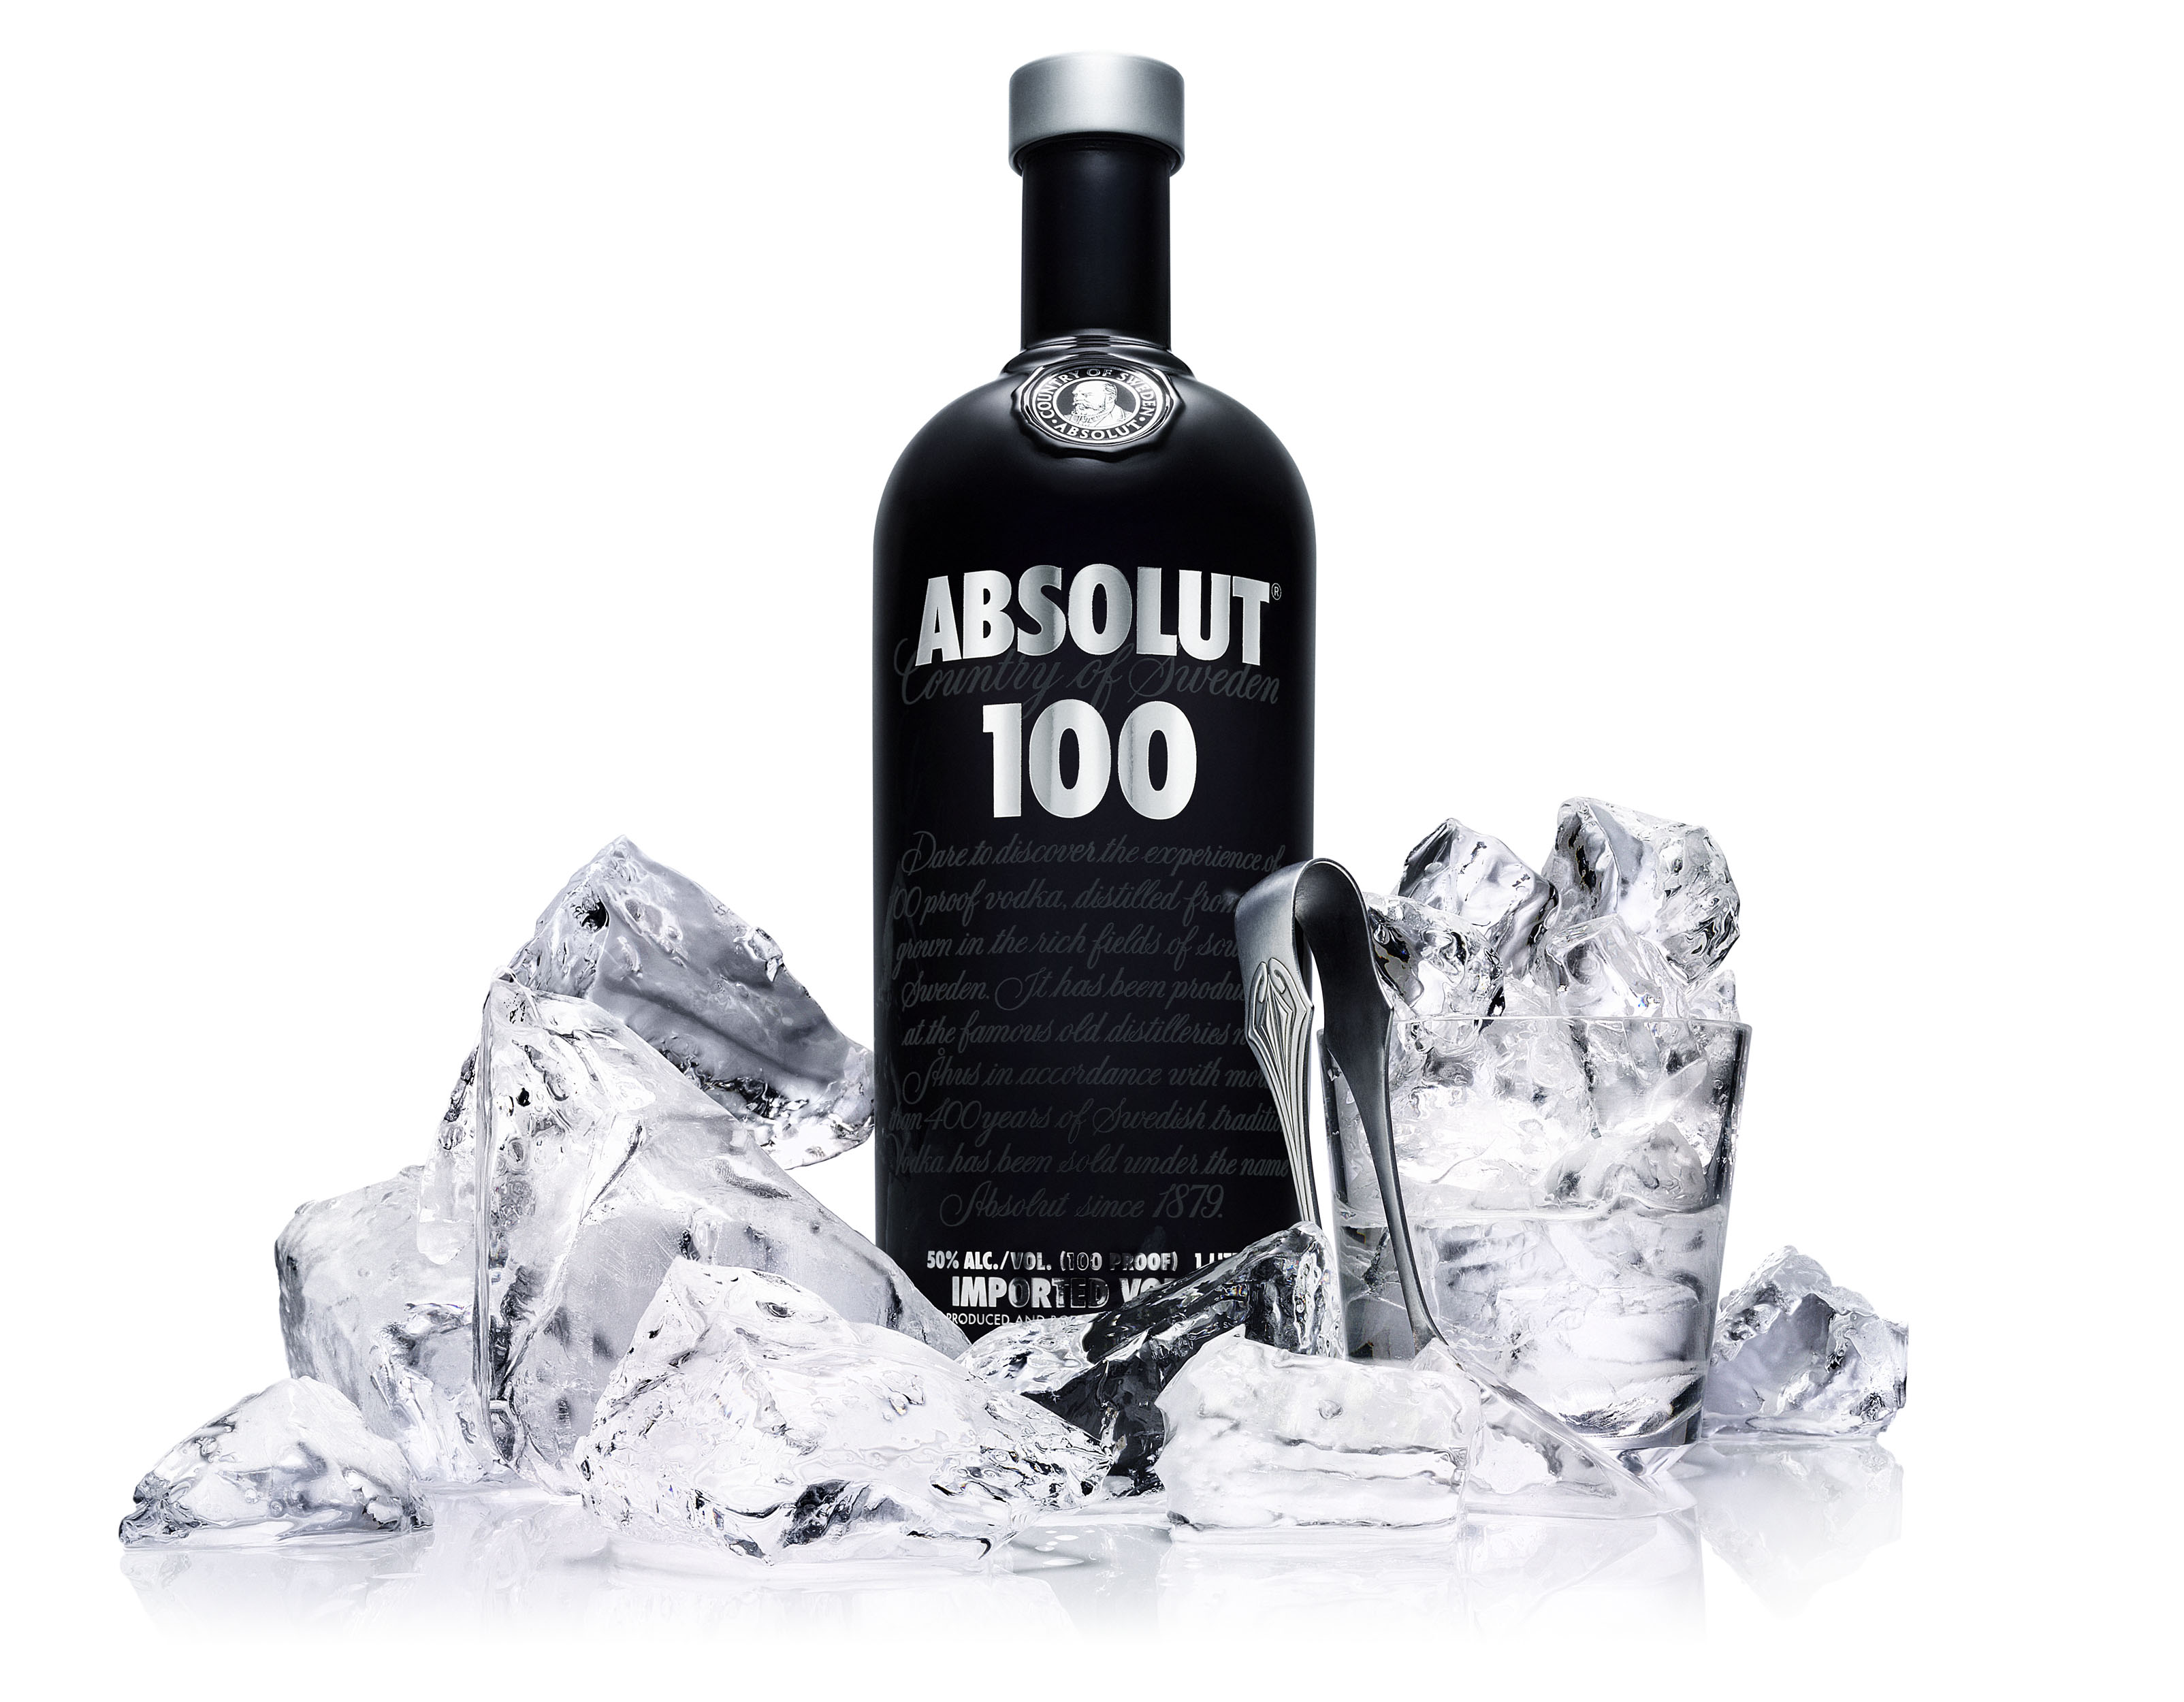 jensmortensen-absolut-vodka-7f6db083